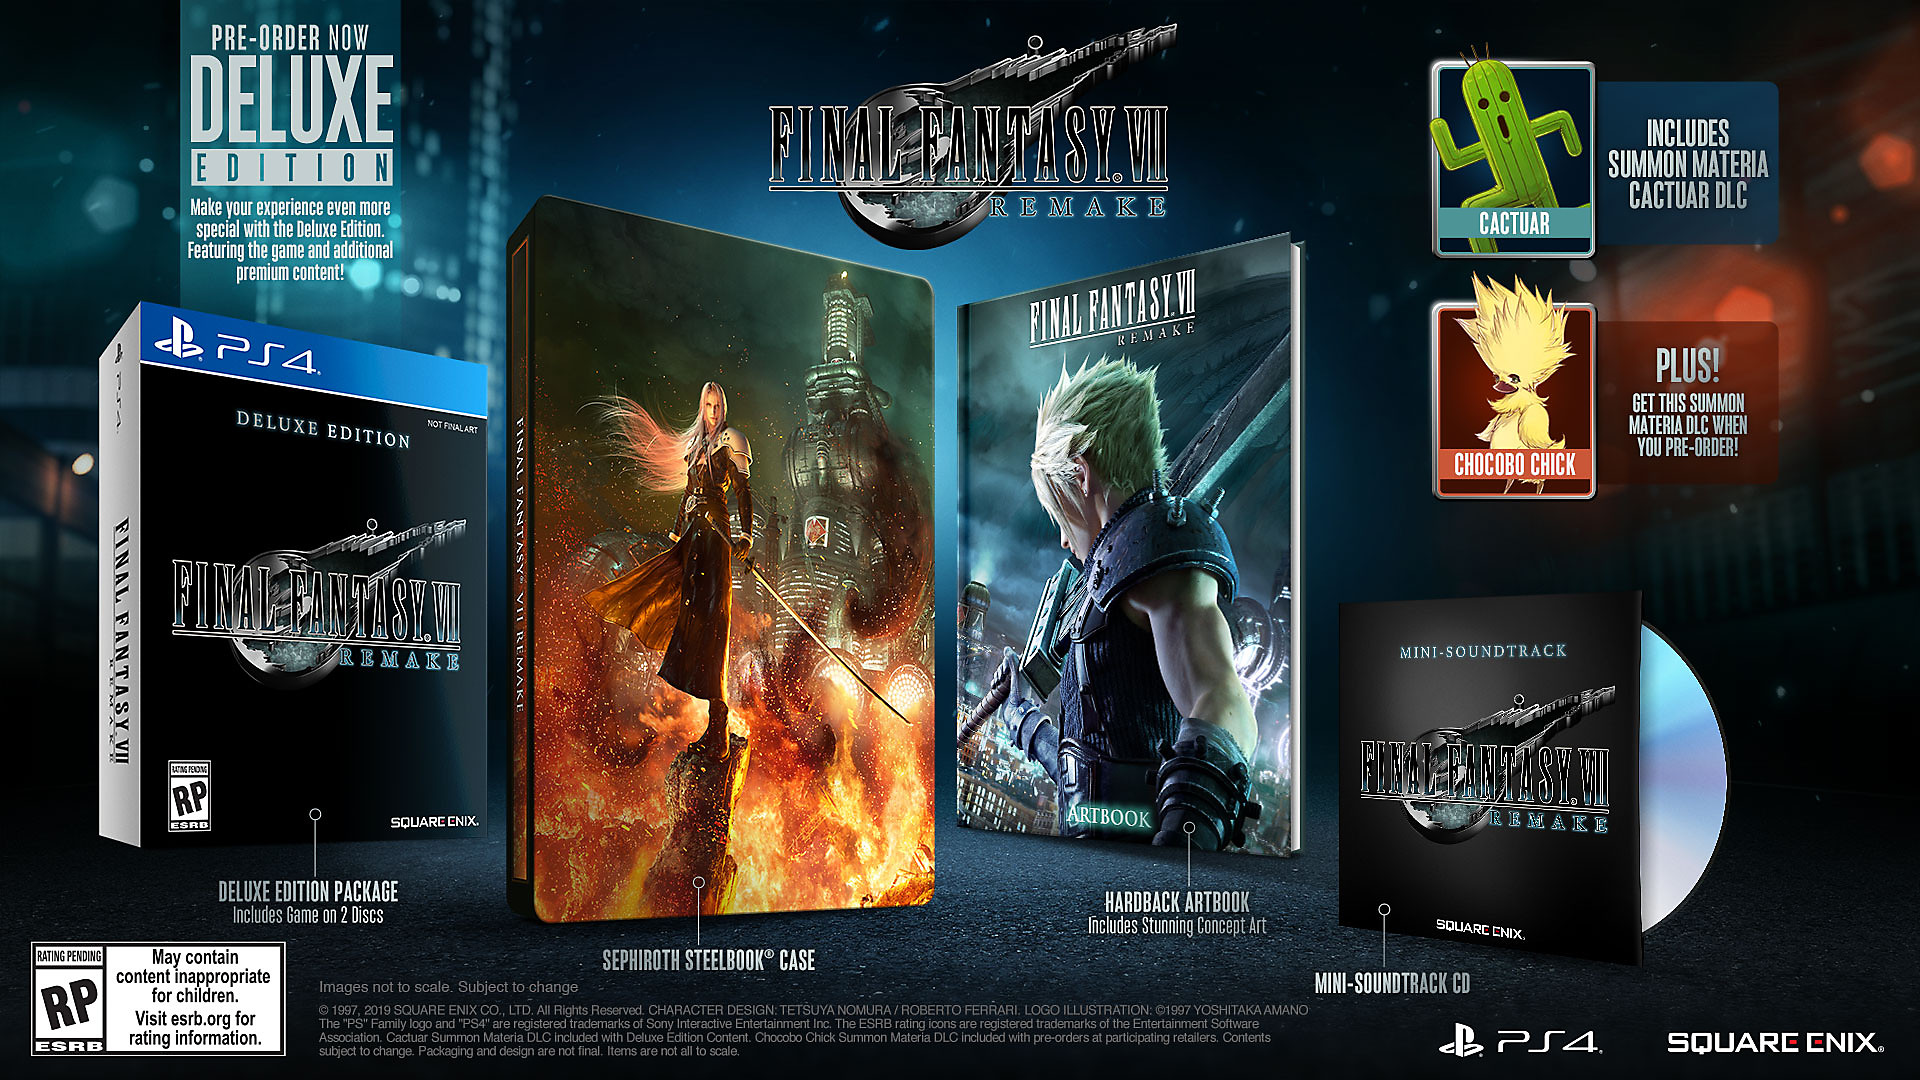 FINAL FANTASY VII REMAKE - Arte de marketing da Deluxe Edition